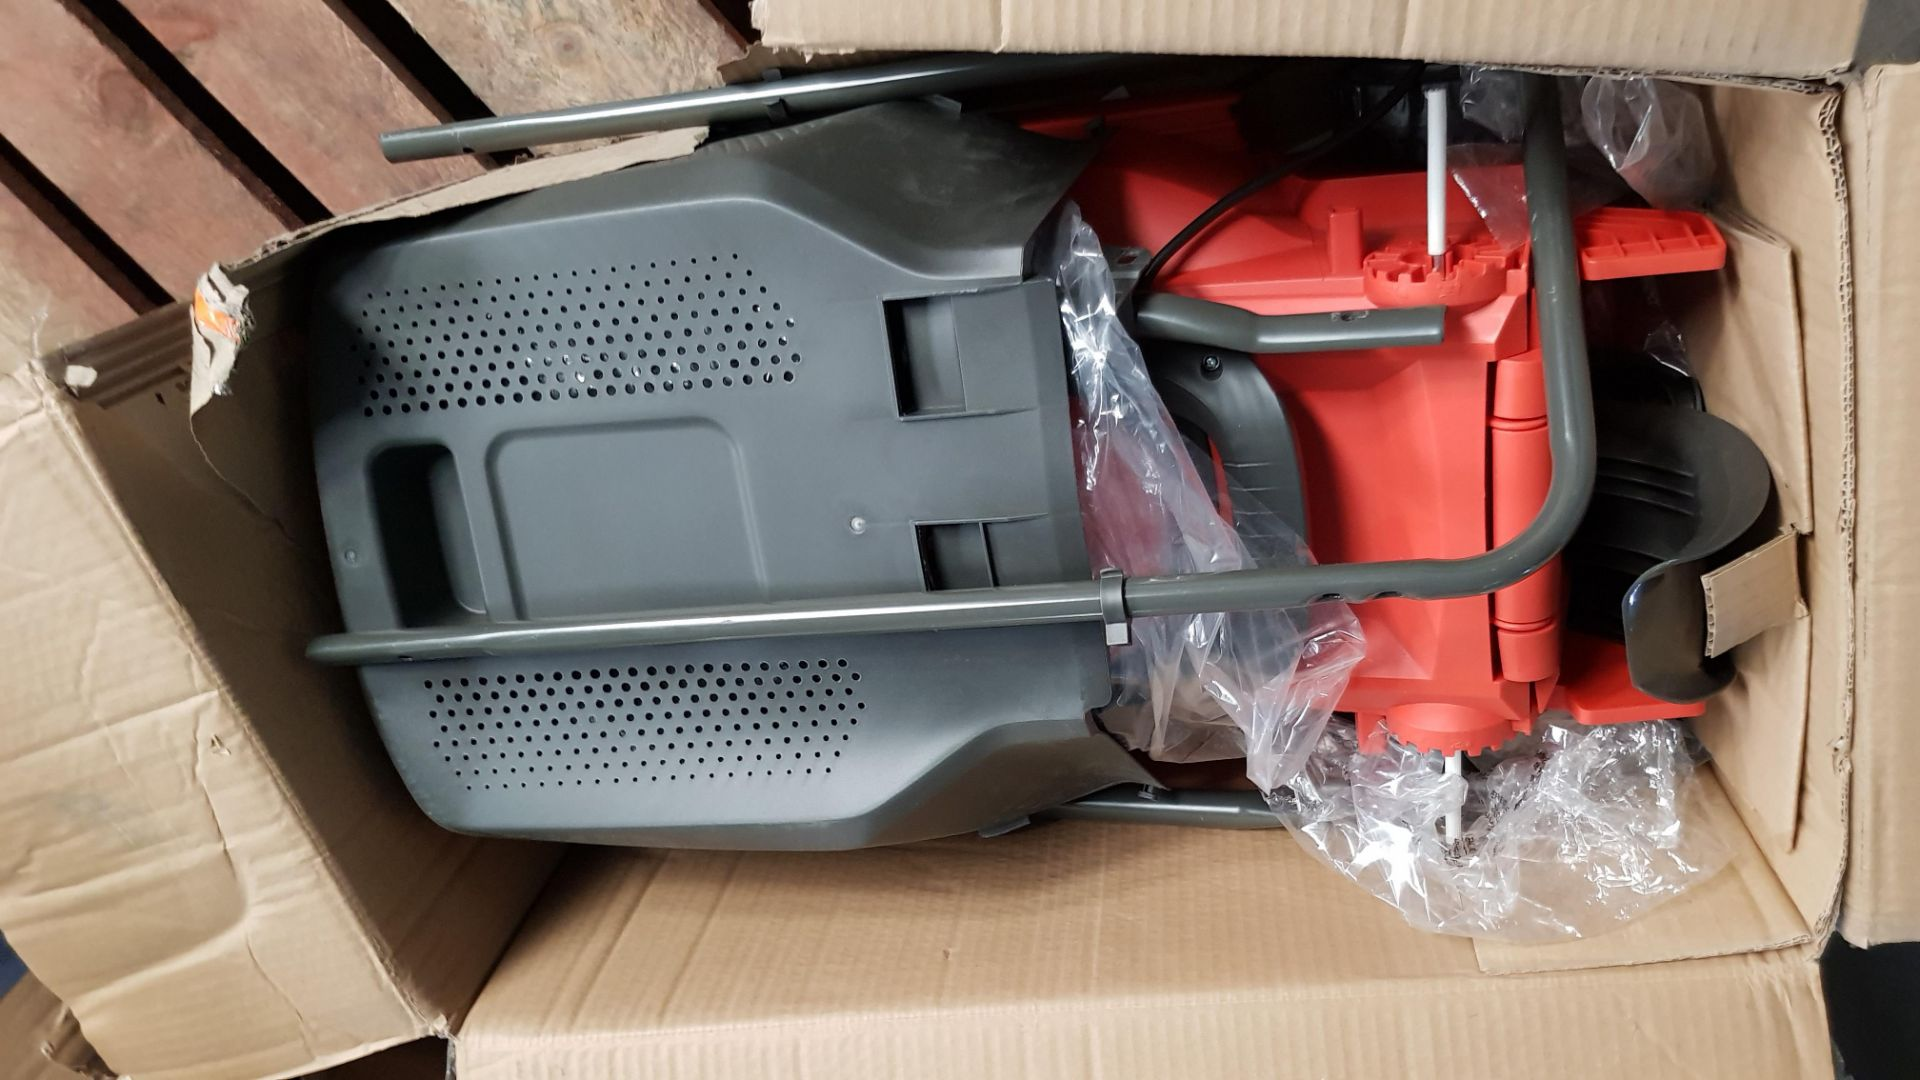 (P3) 1x Flymo EasiStore 340R. RRP £115.00. (Damaged Box – Contents Appear Clean, Unused). - Image 5 of 5